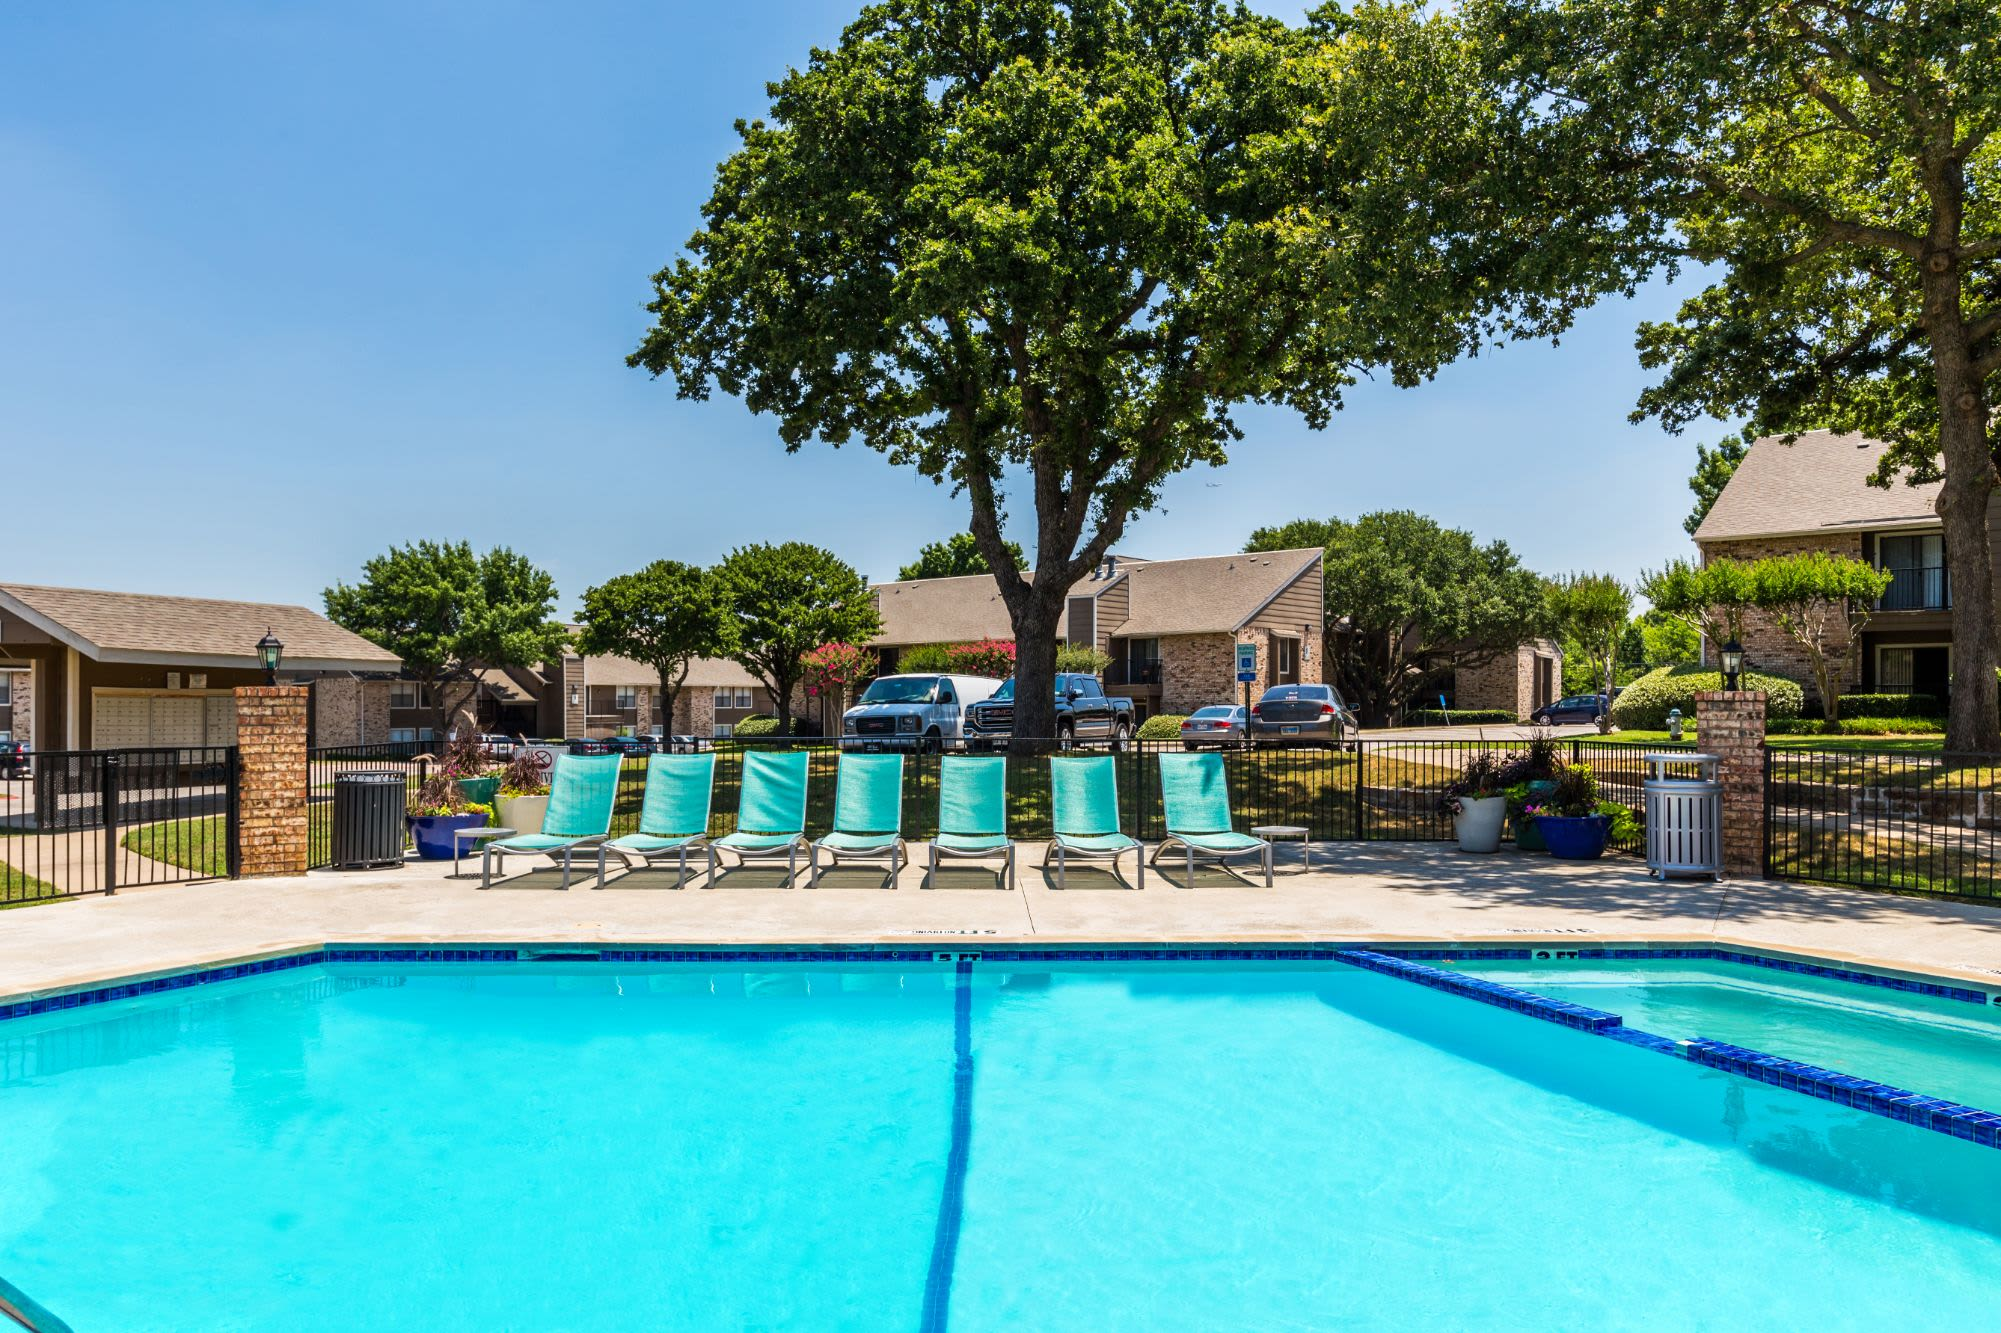 Sparkling pool with sun chairs at The Park at Flower Mound in Flower Mound, Texas